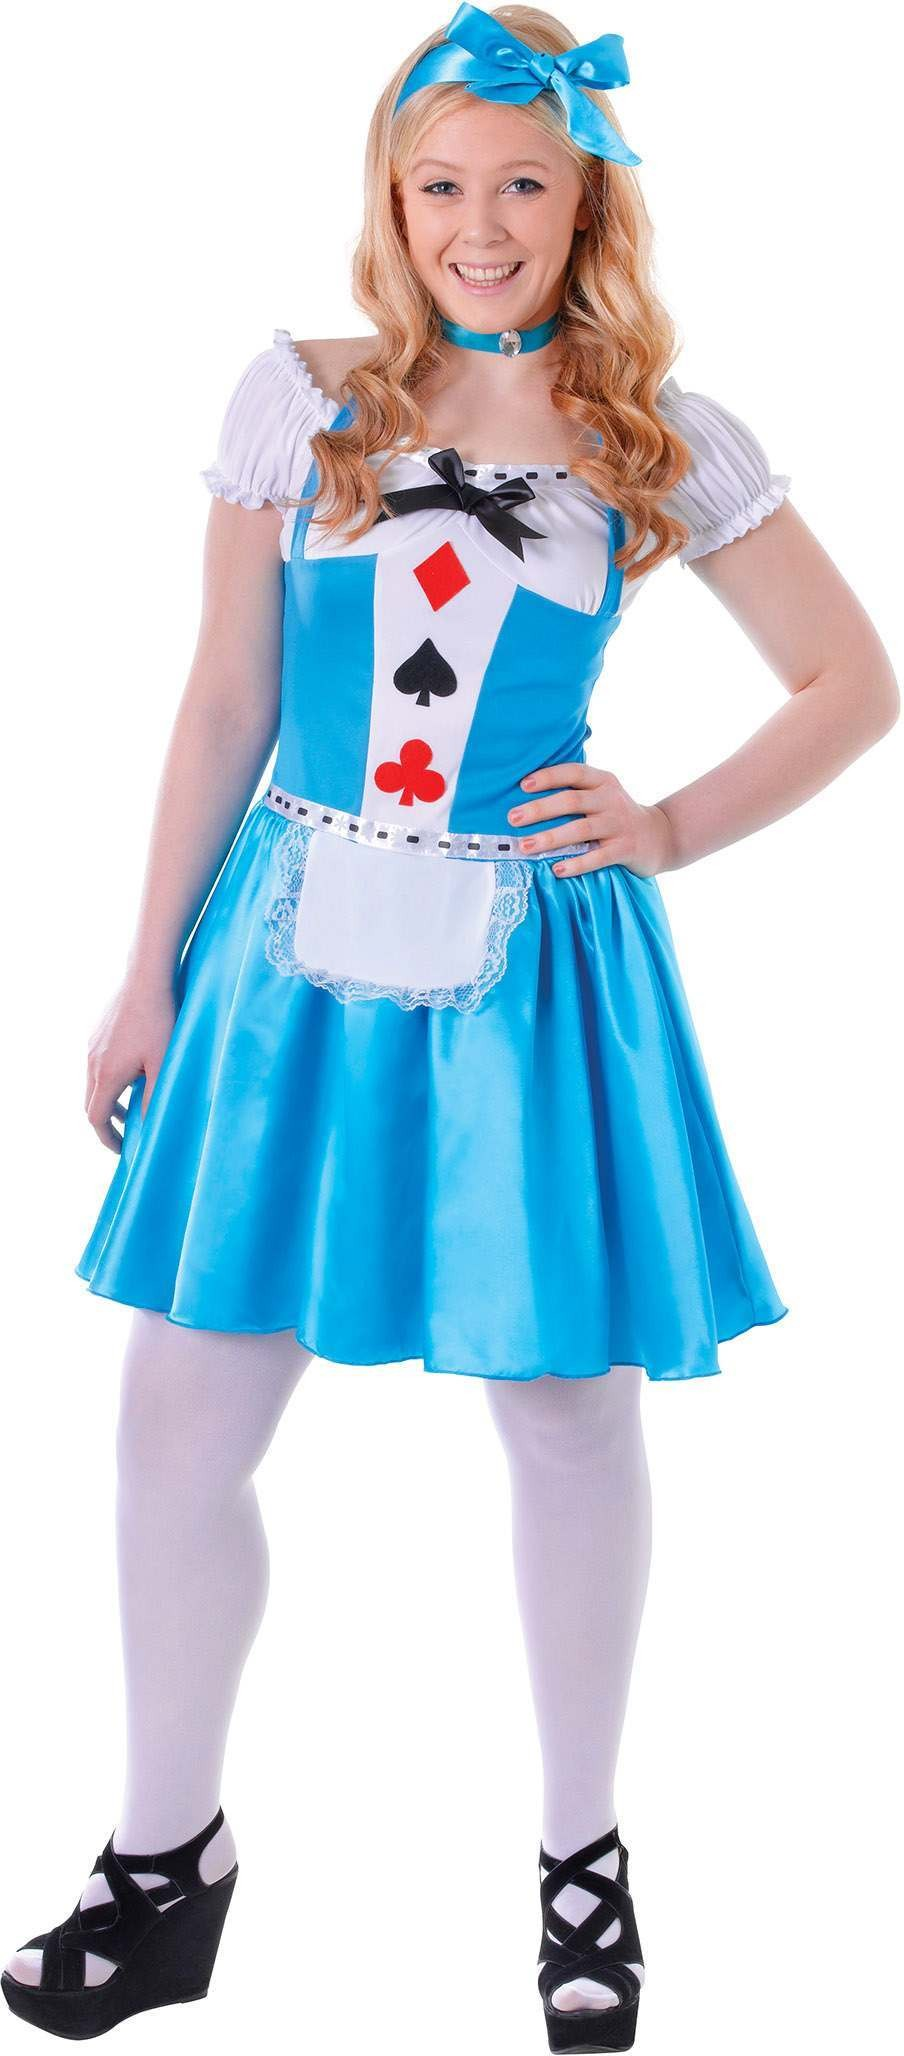 Teen Alice Hearts Girl Fancy Dress Costume